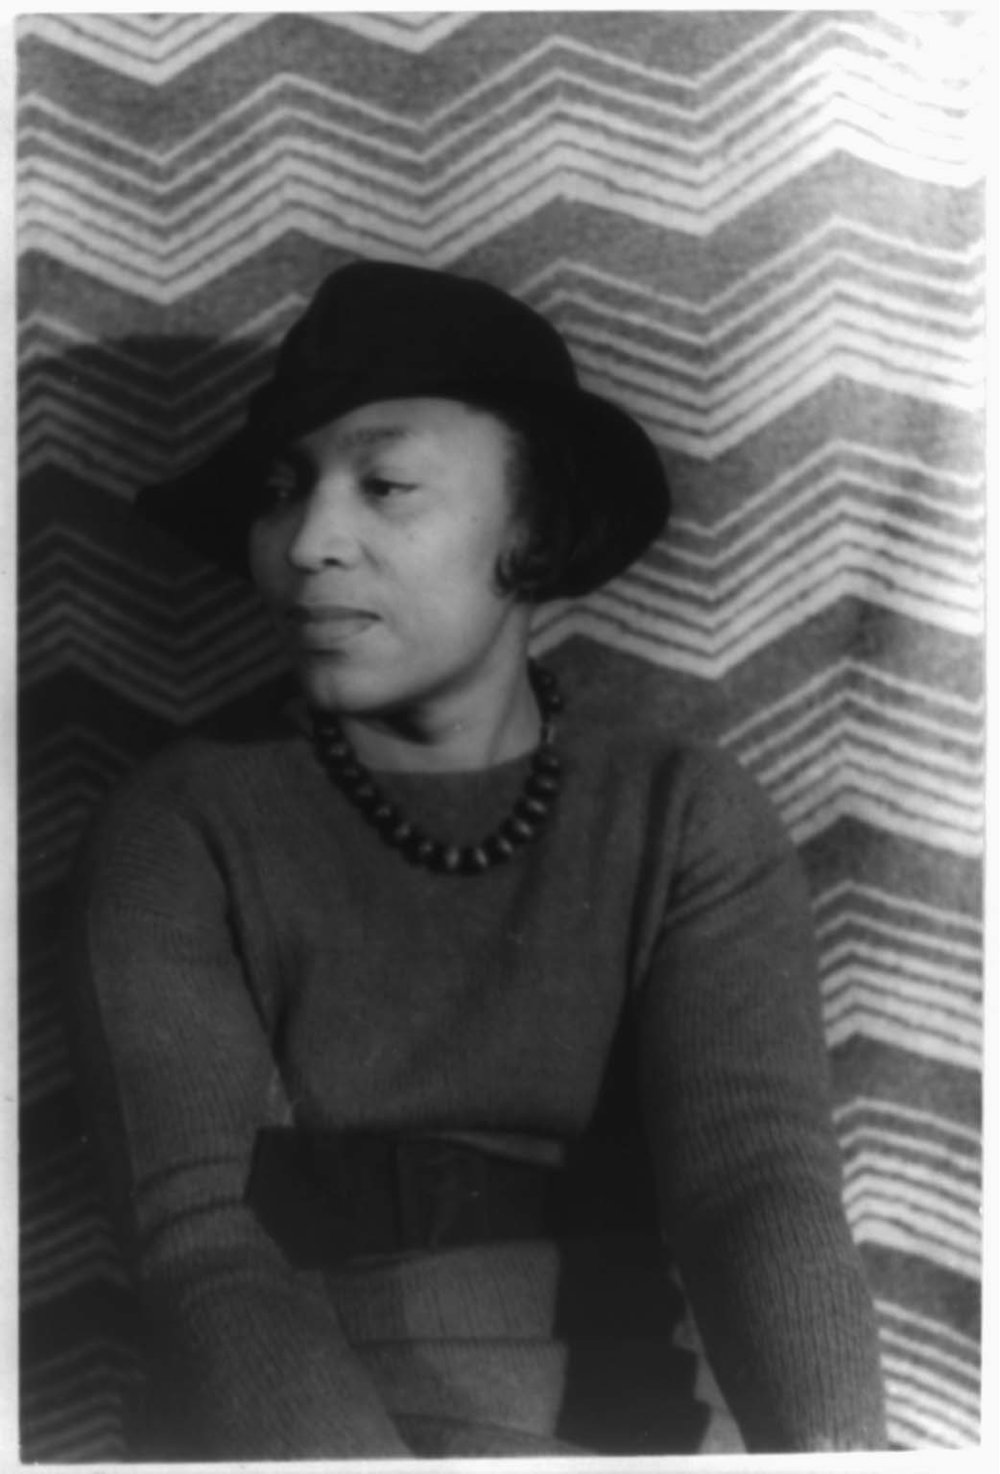 Portrait of Zora Neale Hurston by Carl Van Vechten, 3 April 1938, via   Library of Congress  .